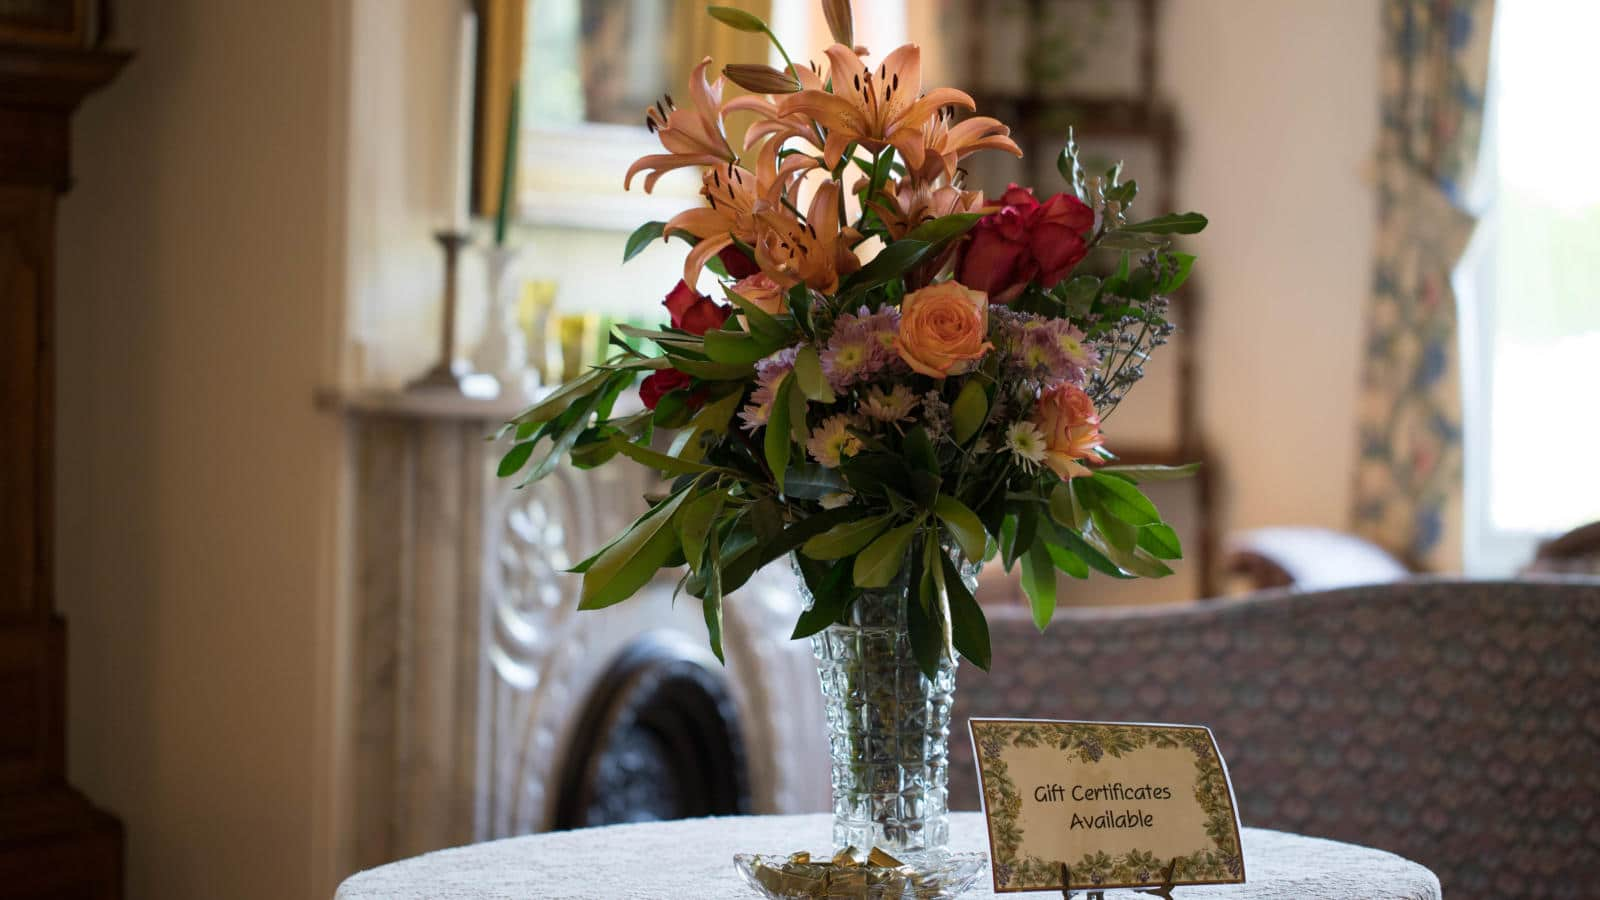 Camellia Inn a Healdsburg California Bed and Breakfast | B&B Dry Creek